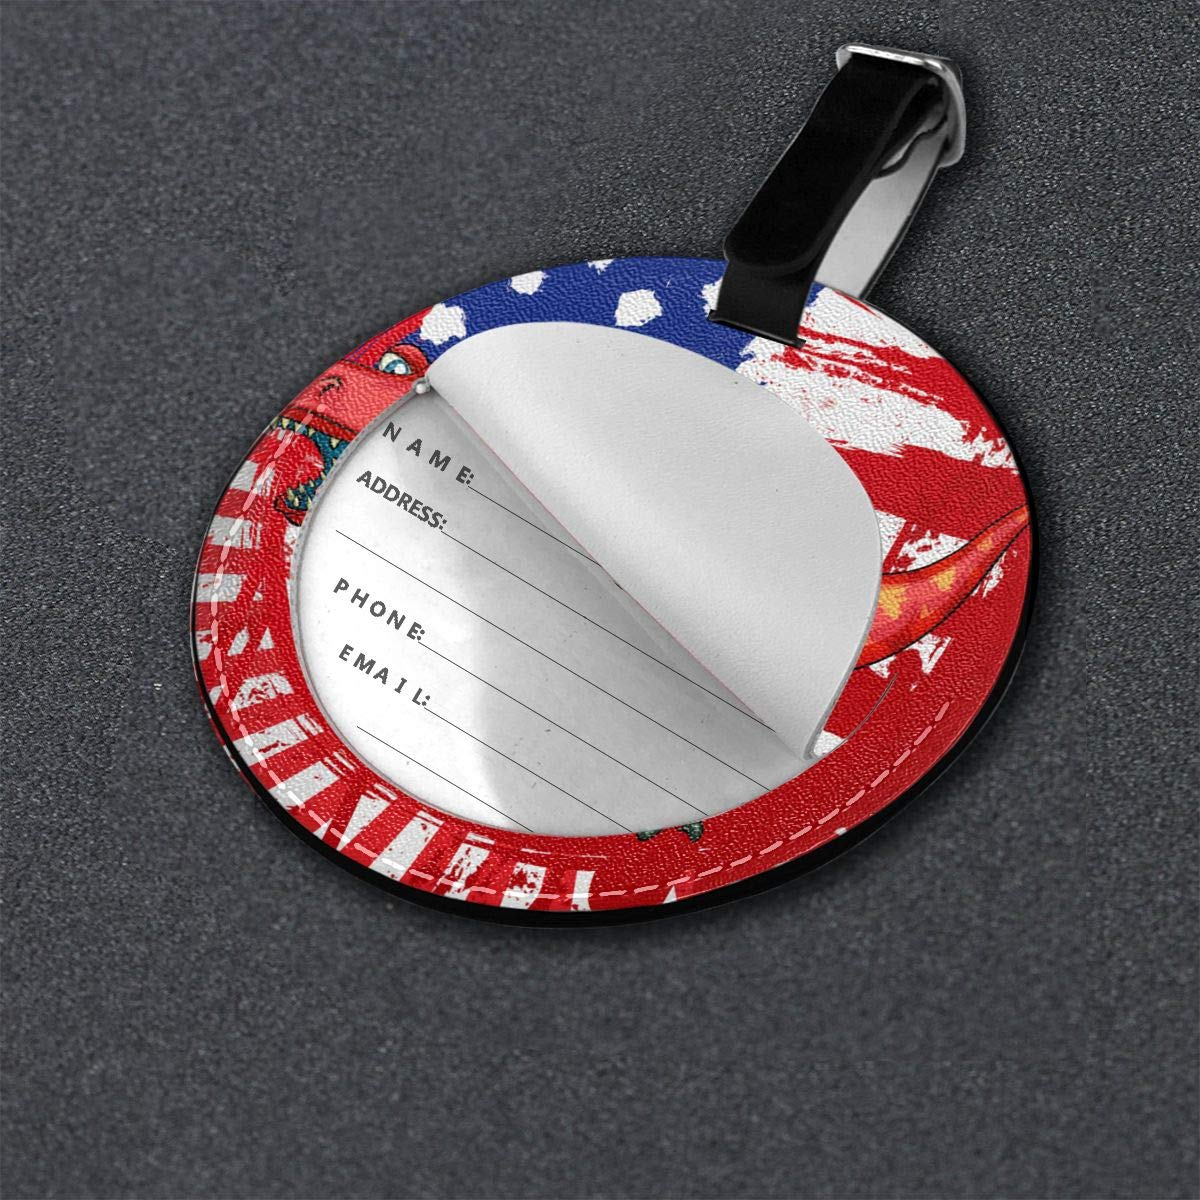 Hs8weyhfffFFF Luggage Tag Round Dinosaurs Us Flag Leather Luggage Bag Label Privacy Cover Business Travel Bag Label